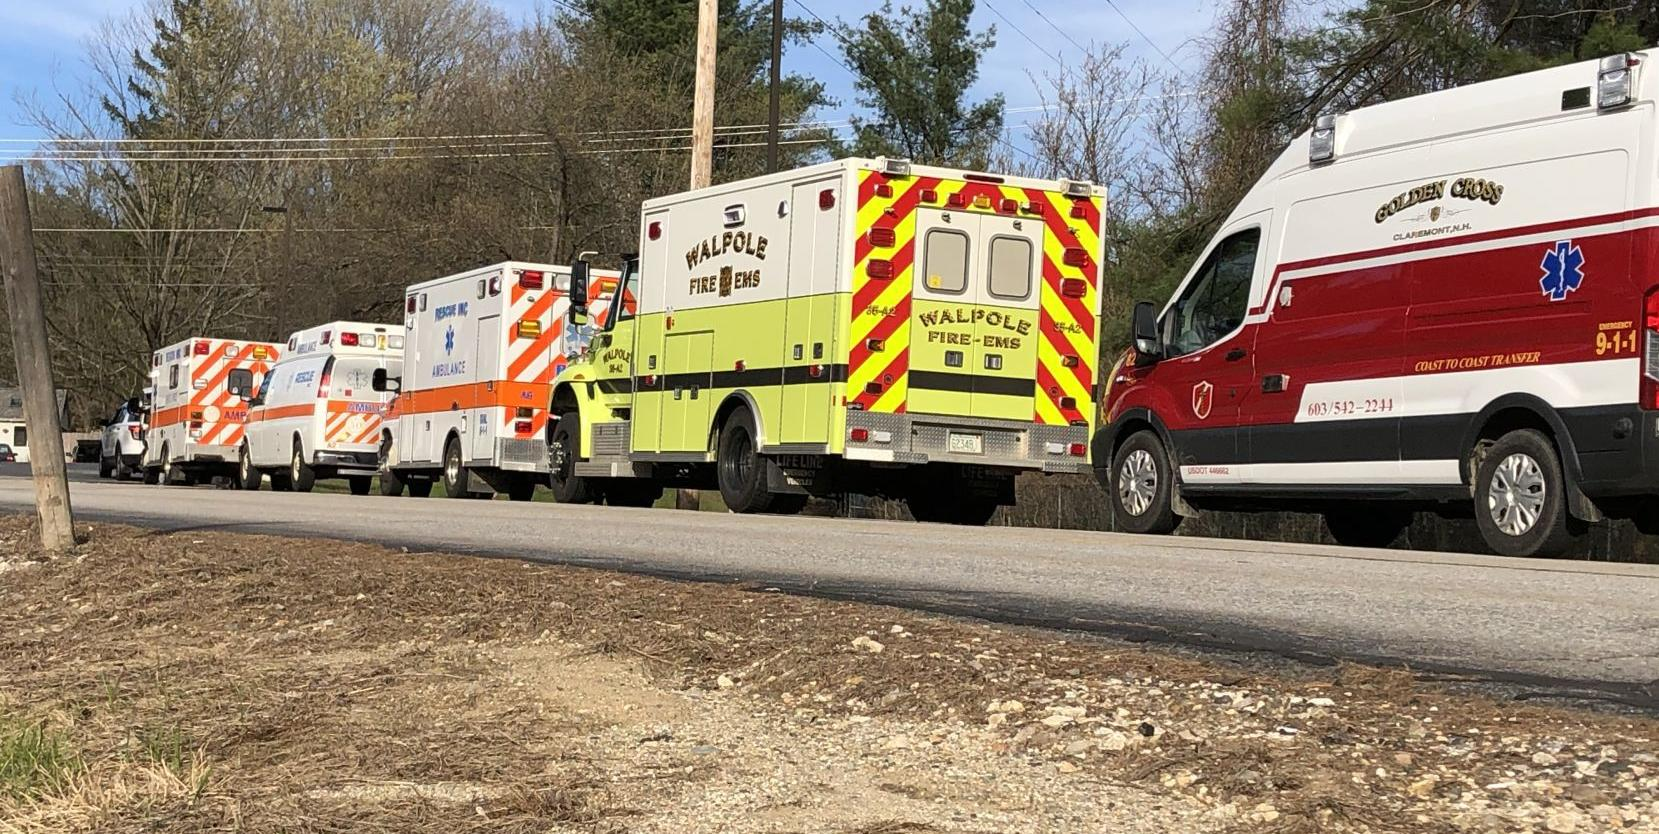 Boiler blows up at Cheshire Medical Center; ambulances line up to move 46 patients